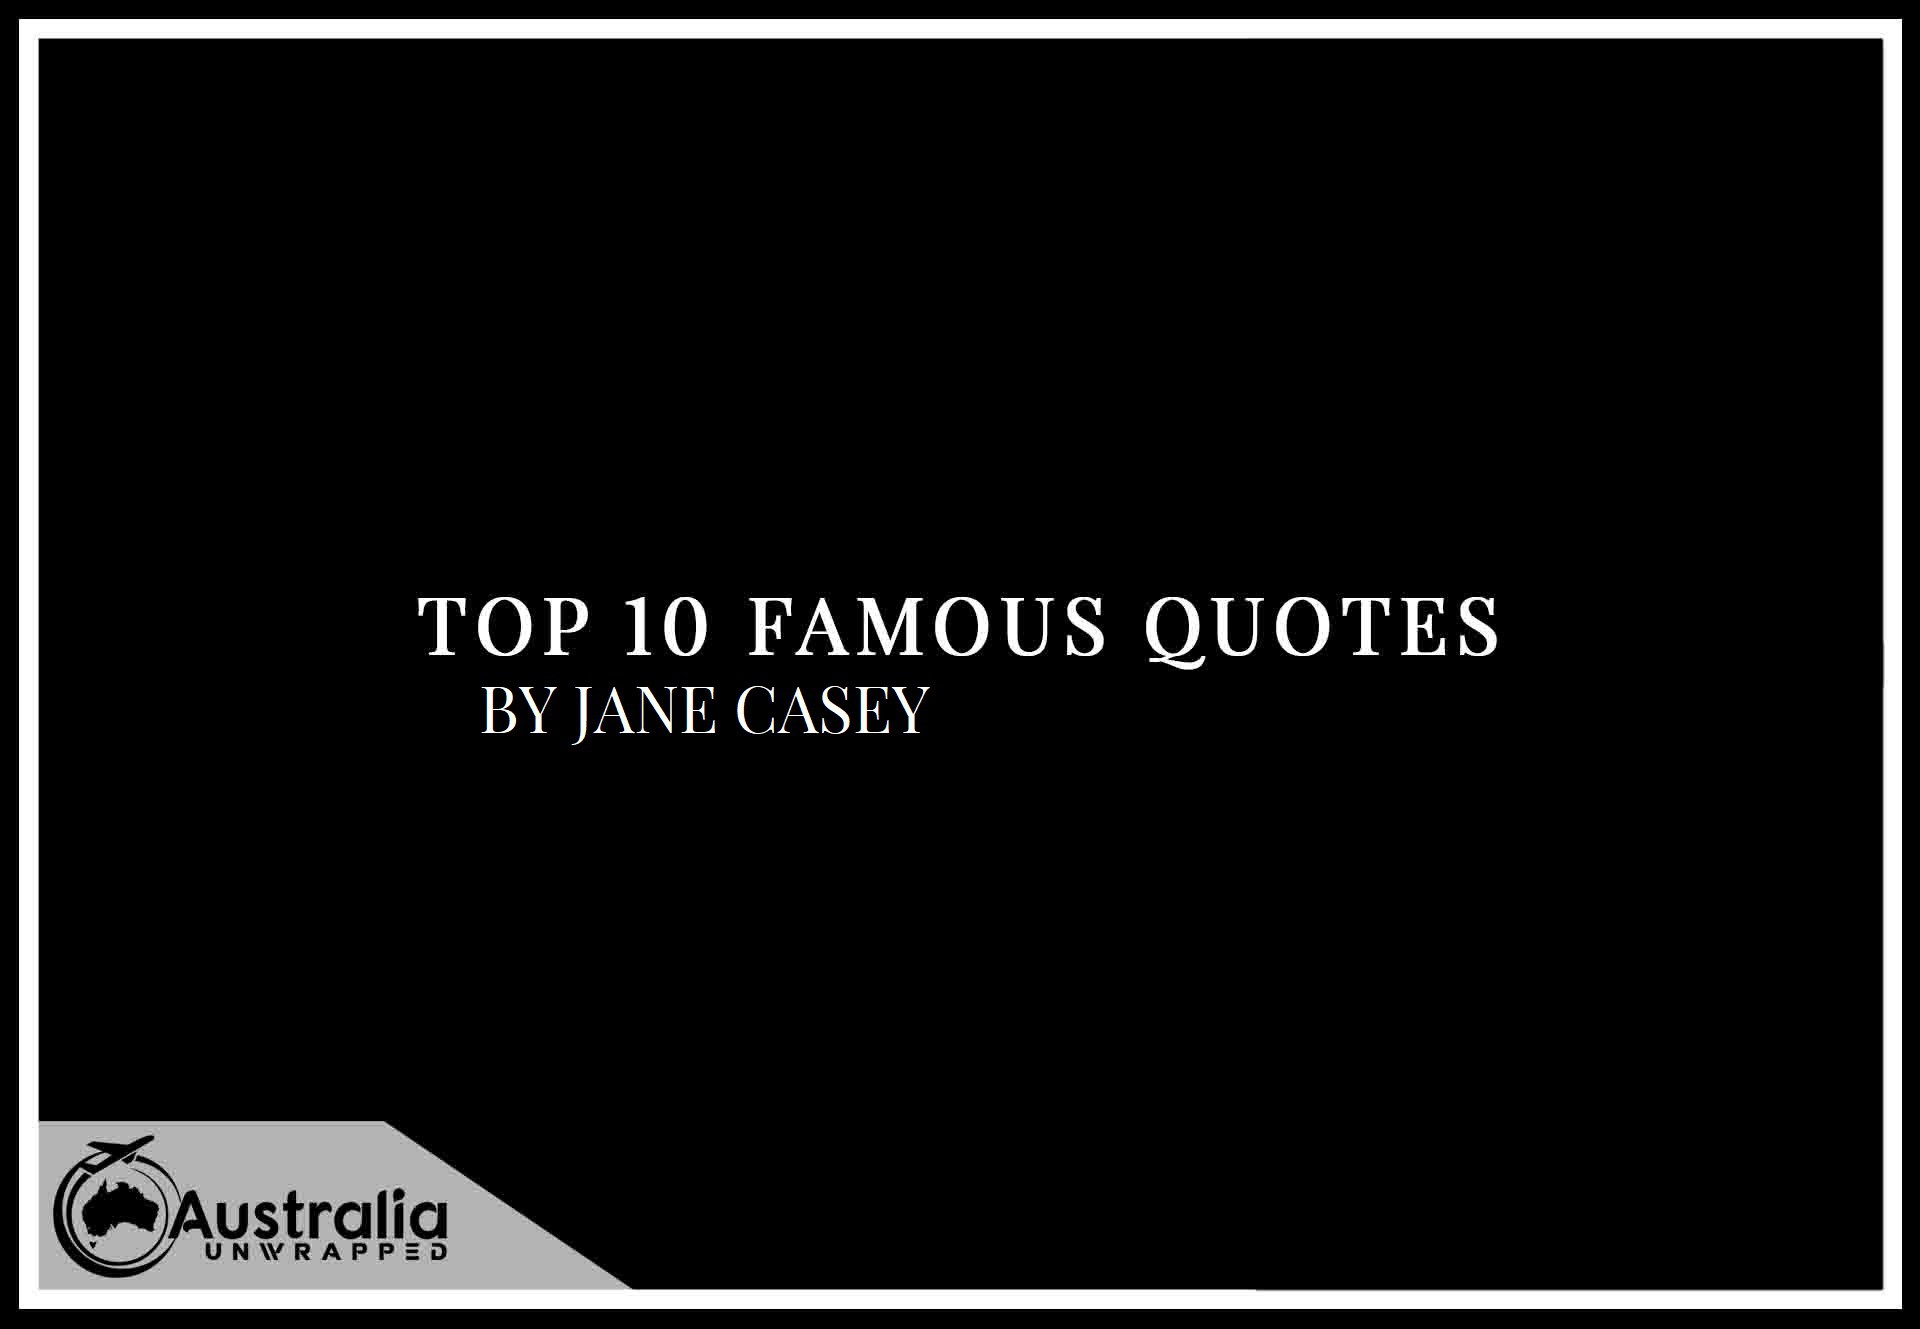 Top 10 Famous Quotes by Author Jane Casey